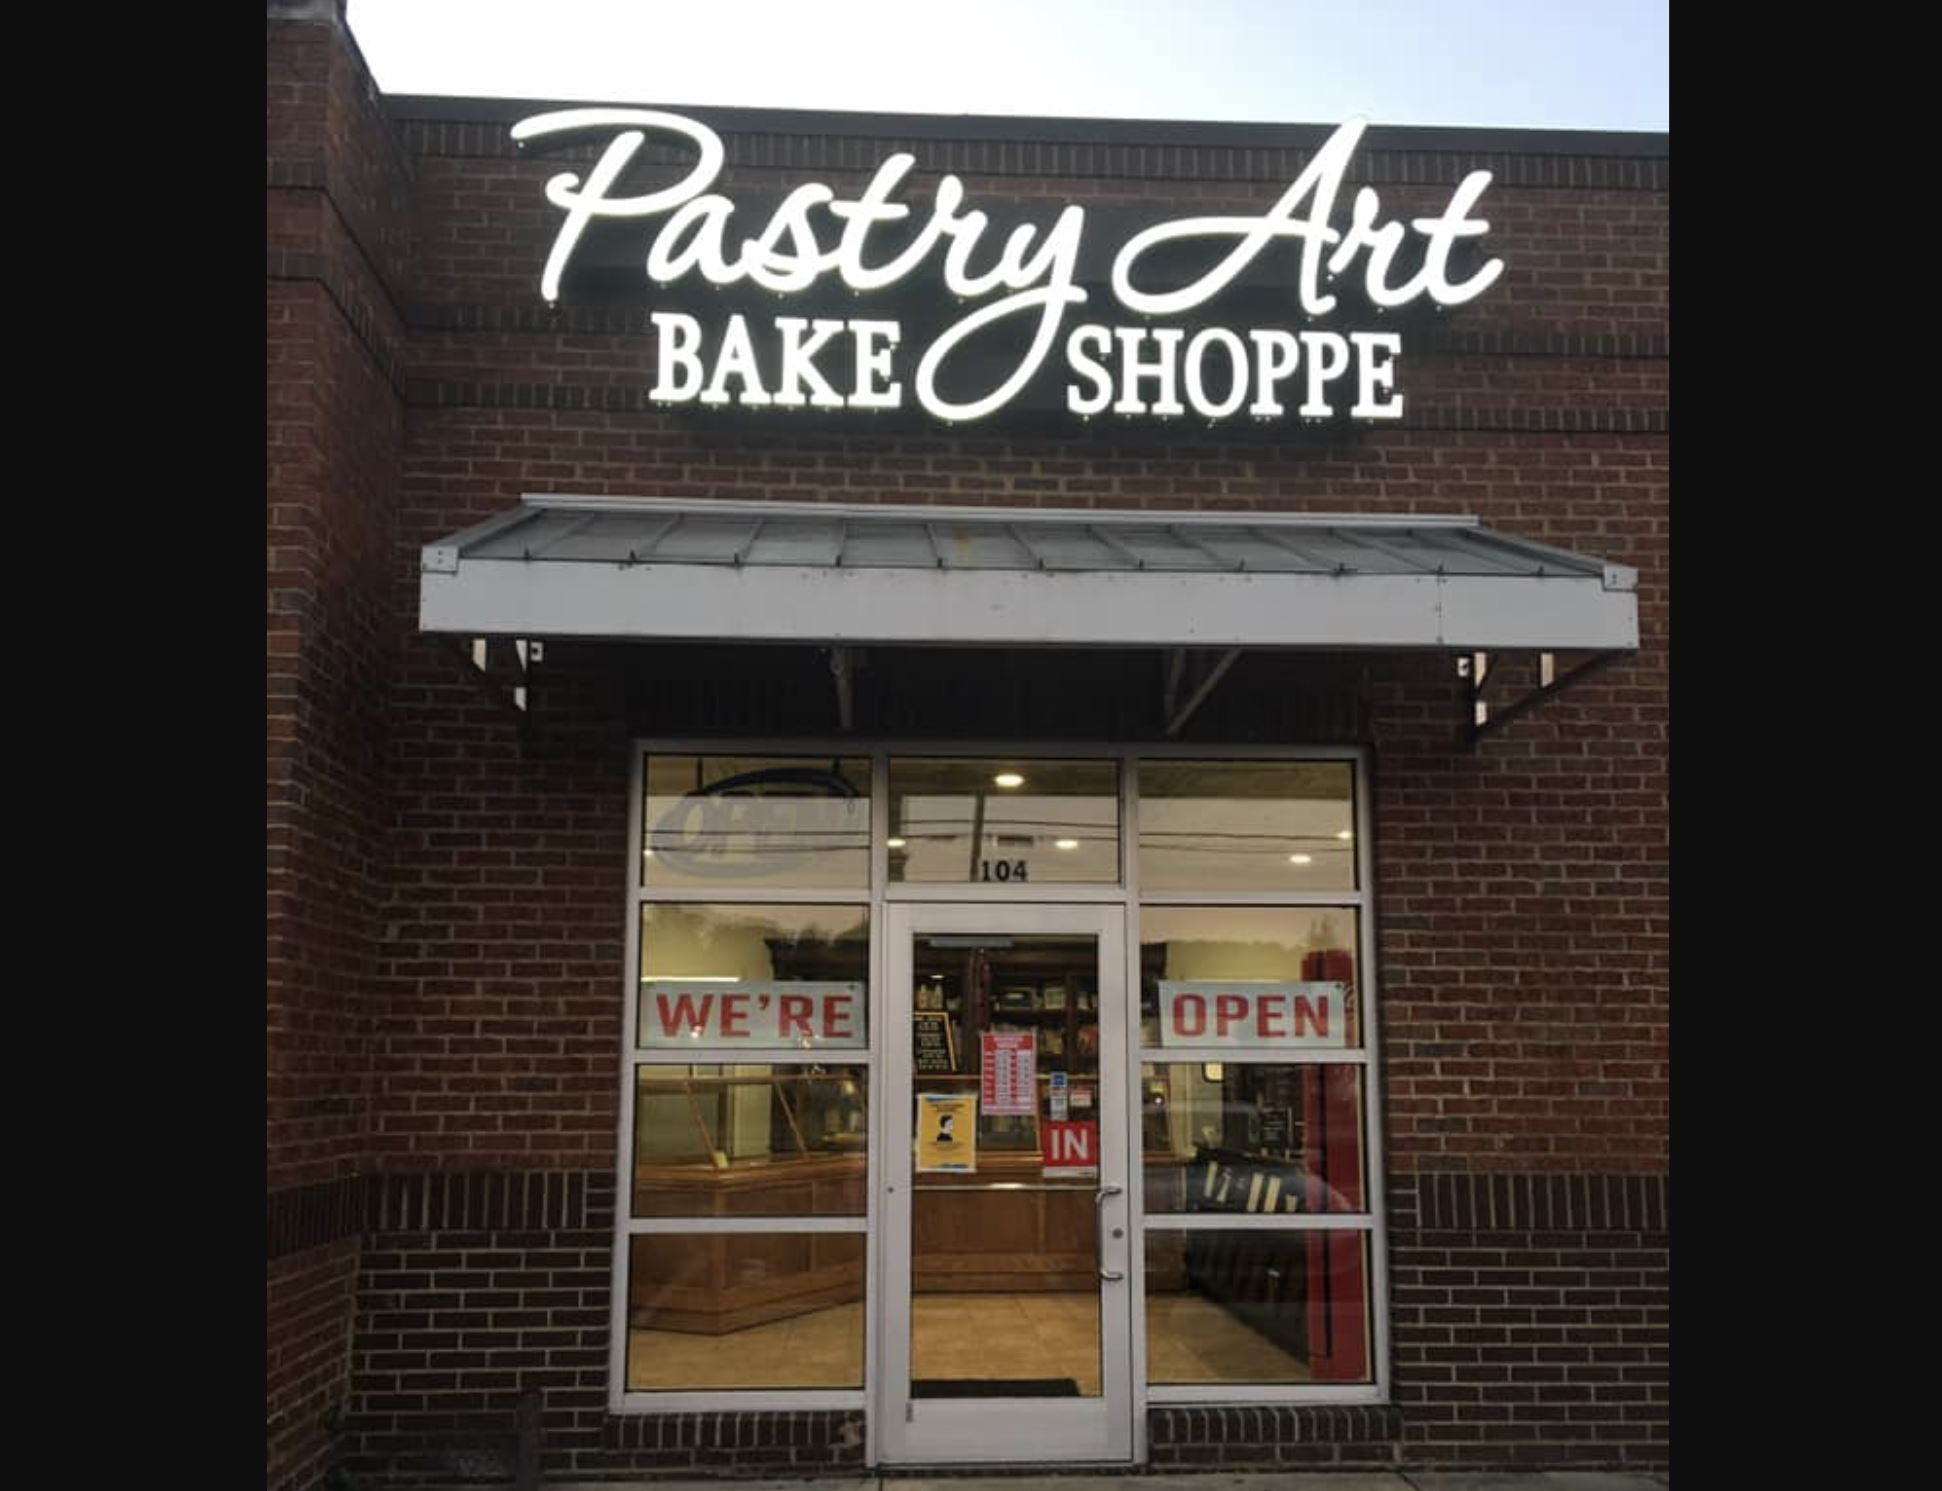 Pastry Art Bake Shoppe now open in Trussville